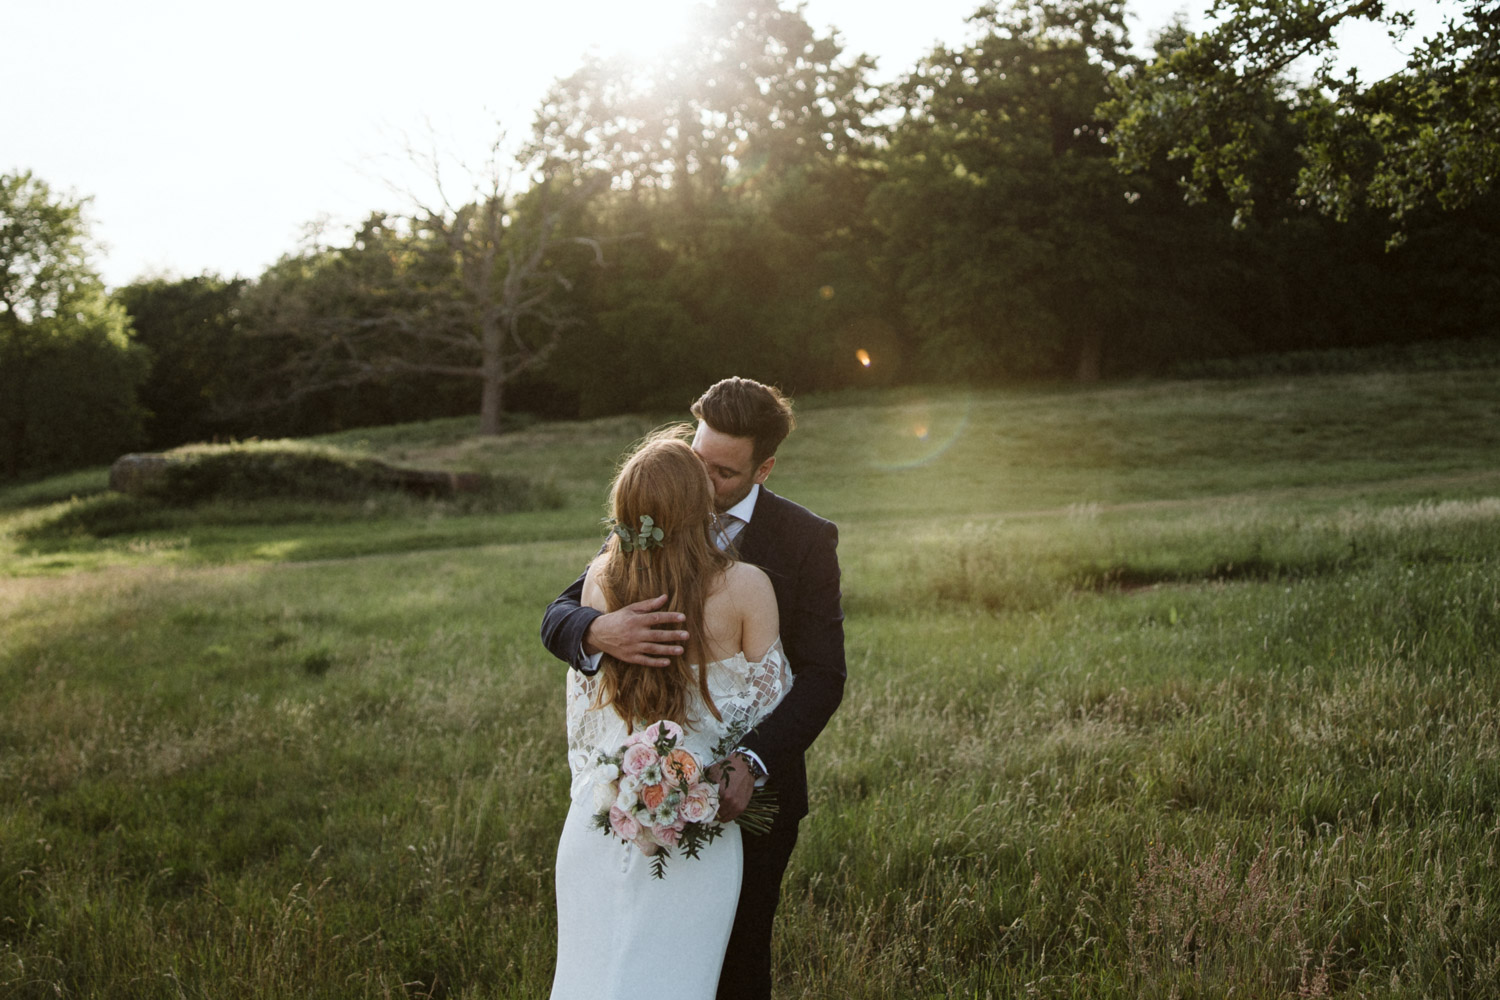 the bride and groom share and embrace in the setting sun